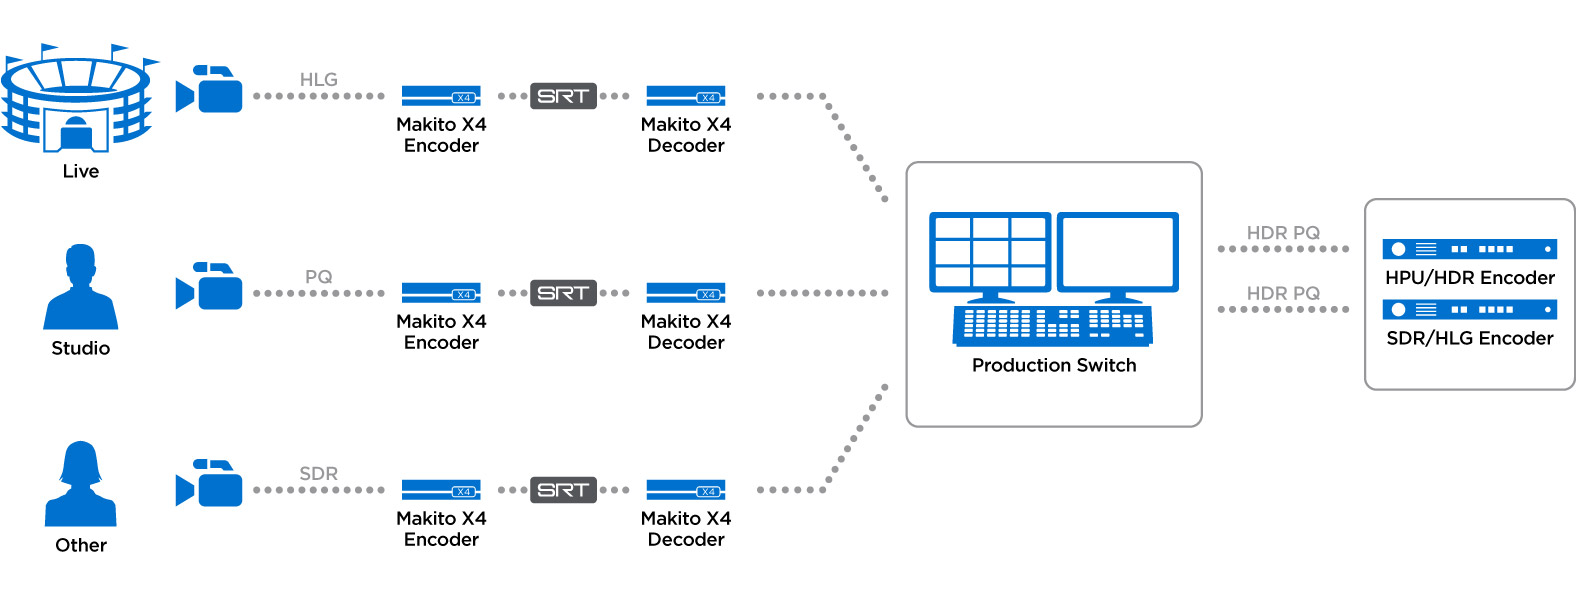 HDR workflow using theMakitoX4 Encoder and Decoder pair